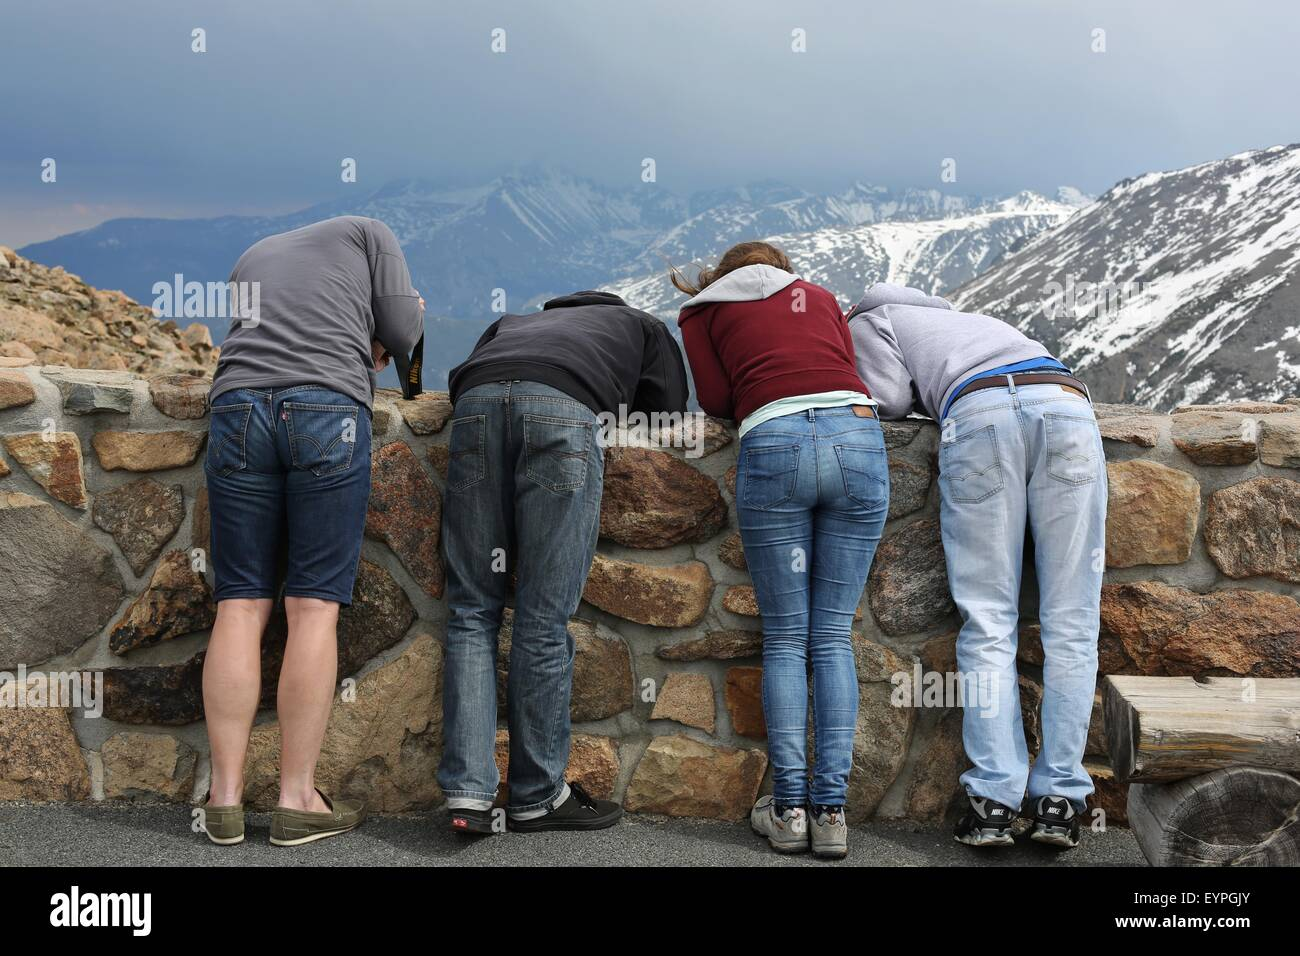 Tourists at Rocky Mountain National Park in Colorado leaning over a wall to look at something. - Stock Image